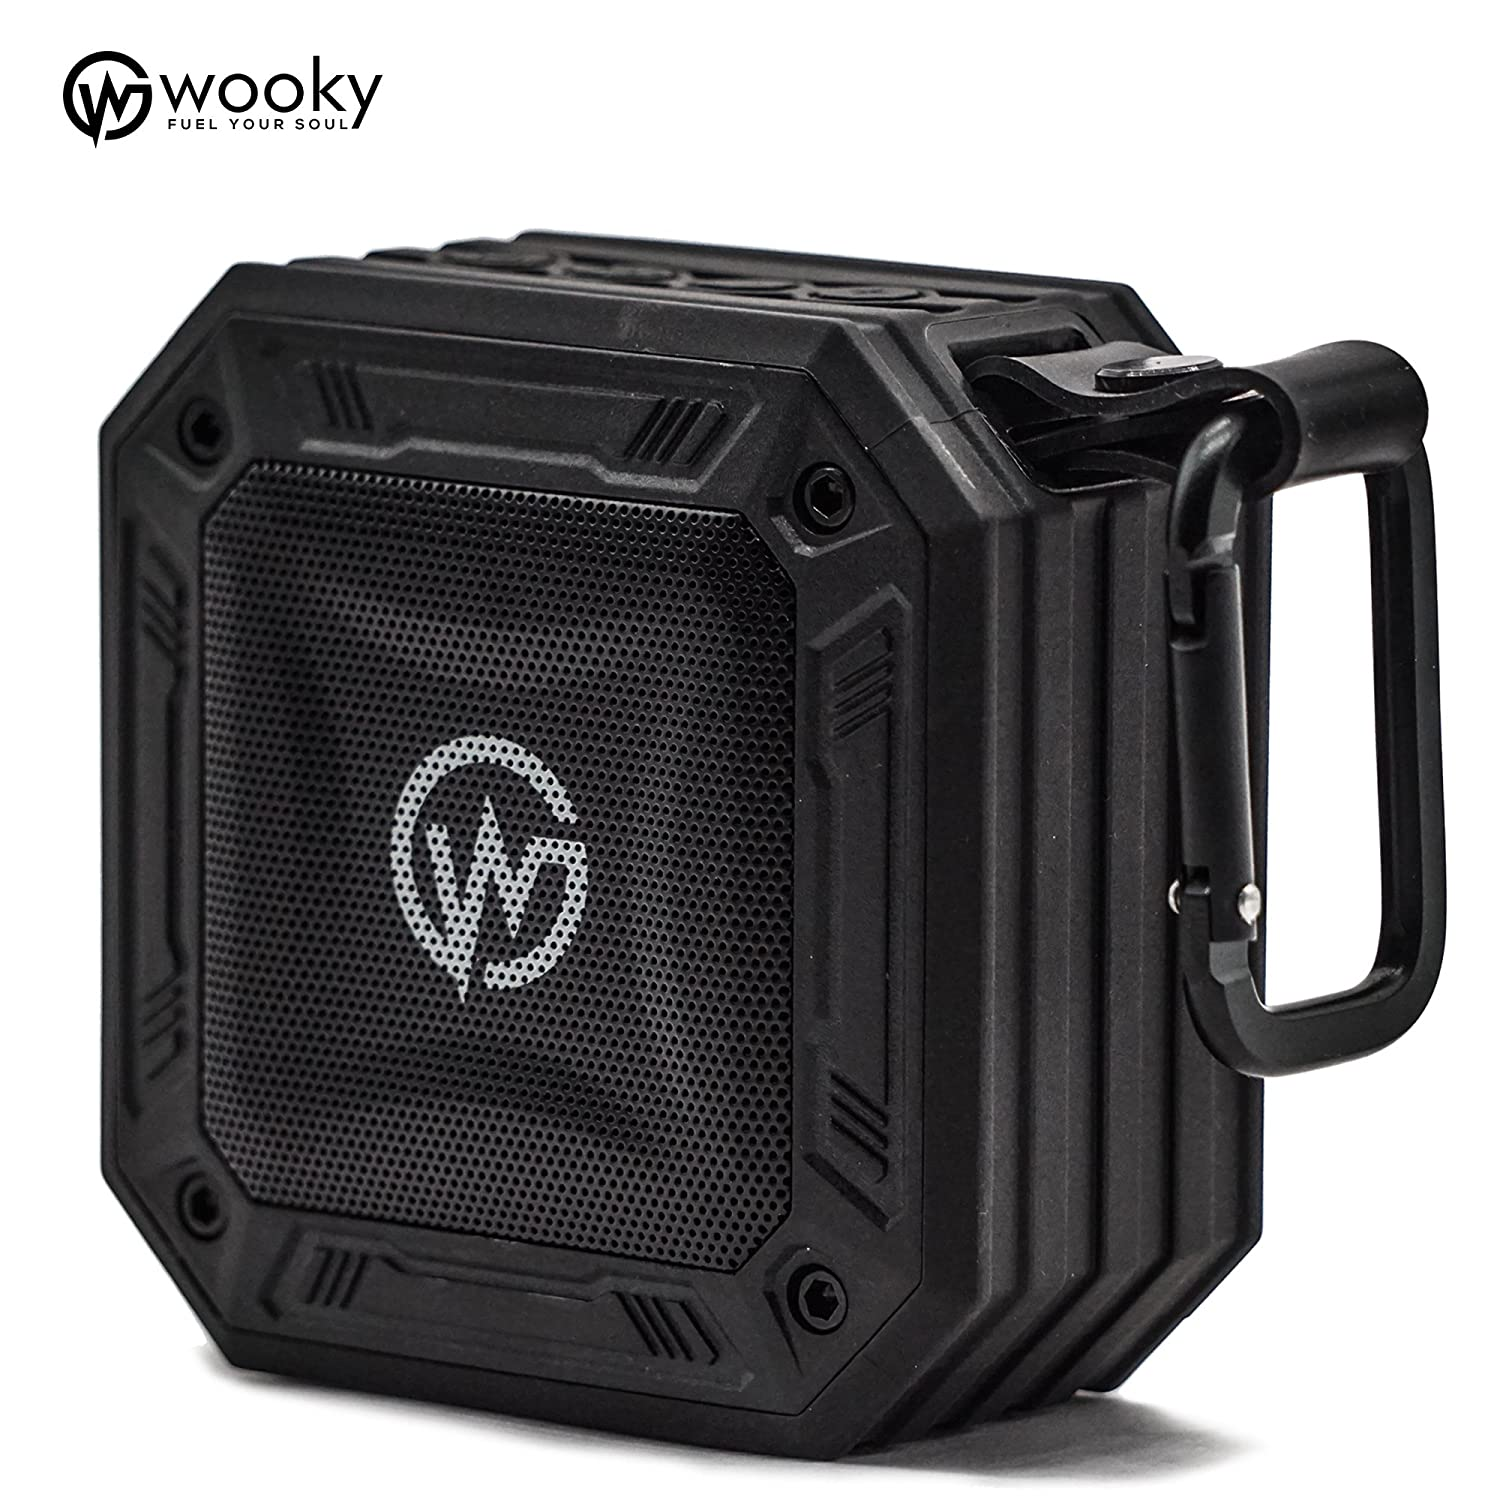 Wooky Aqua Stone-10 5W Wireless Waterproof Bluetooth